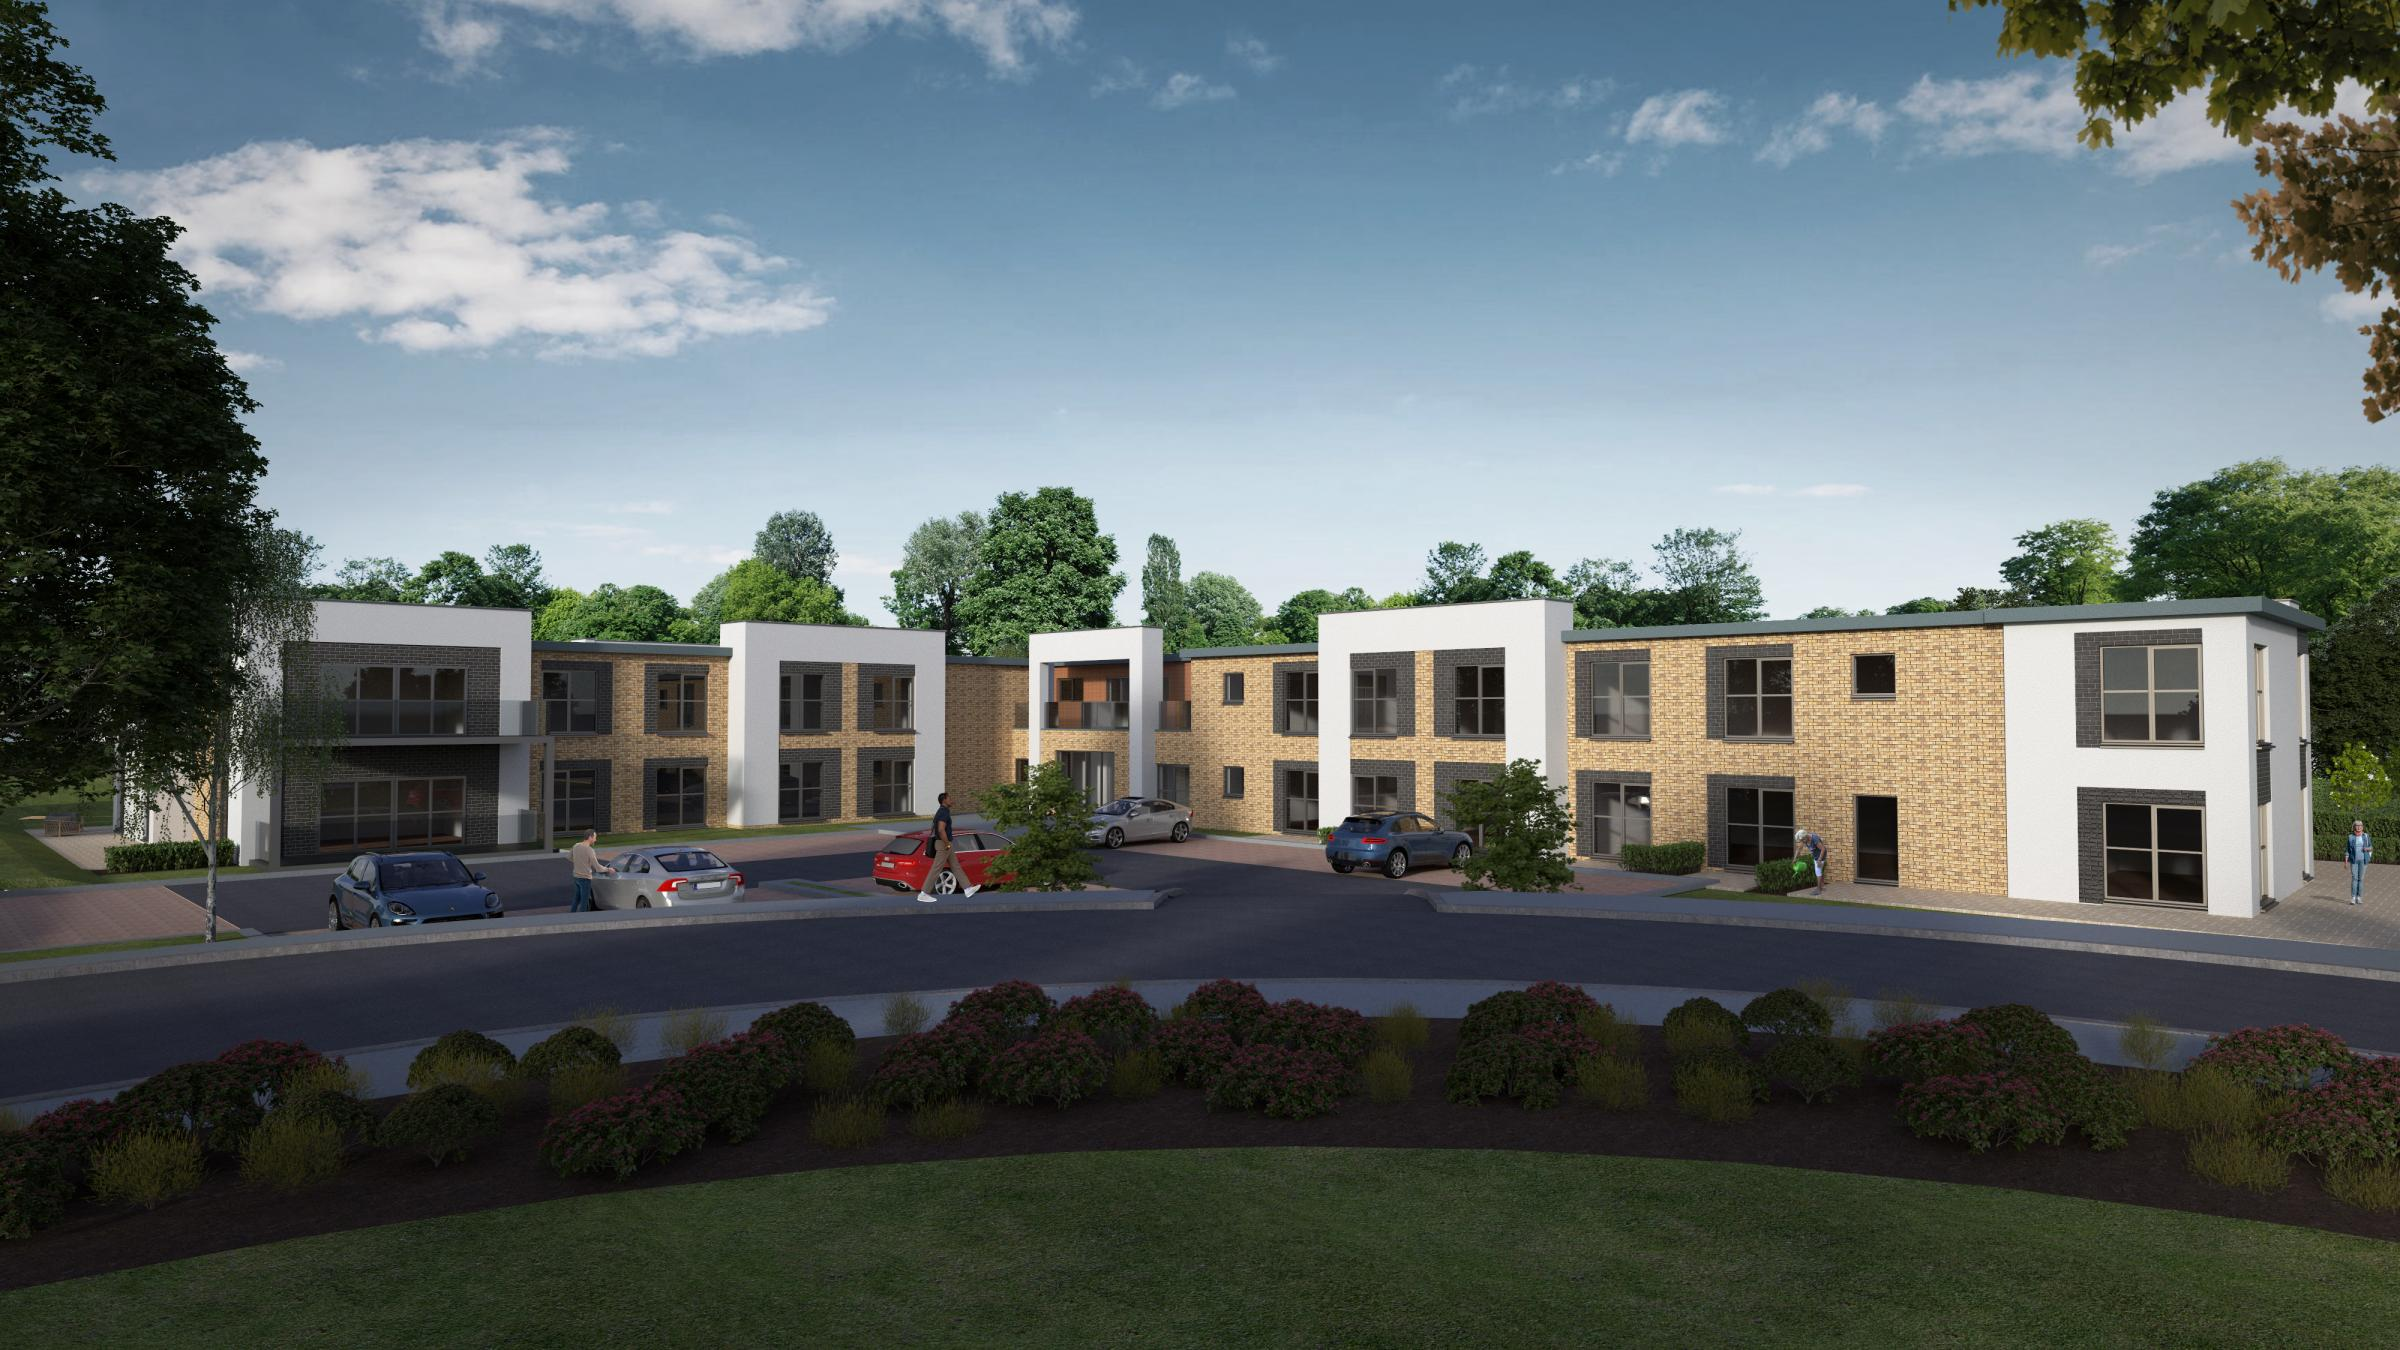 Dunfermline: Simply Group plans luxury care home in Pitreavie with cinema, cafe and hair salon